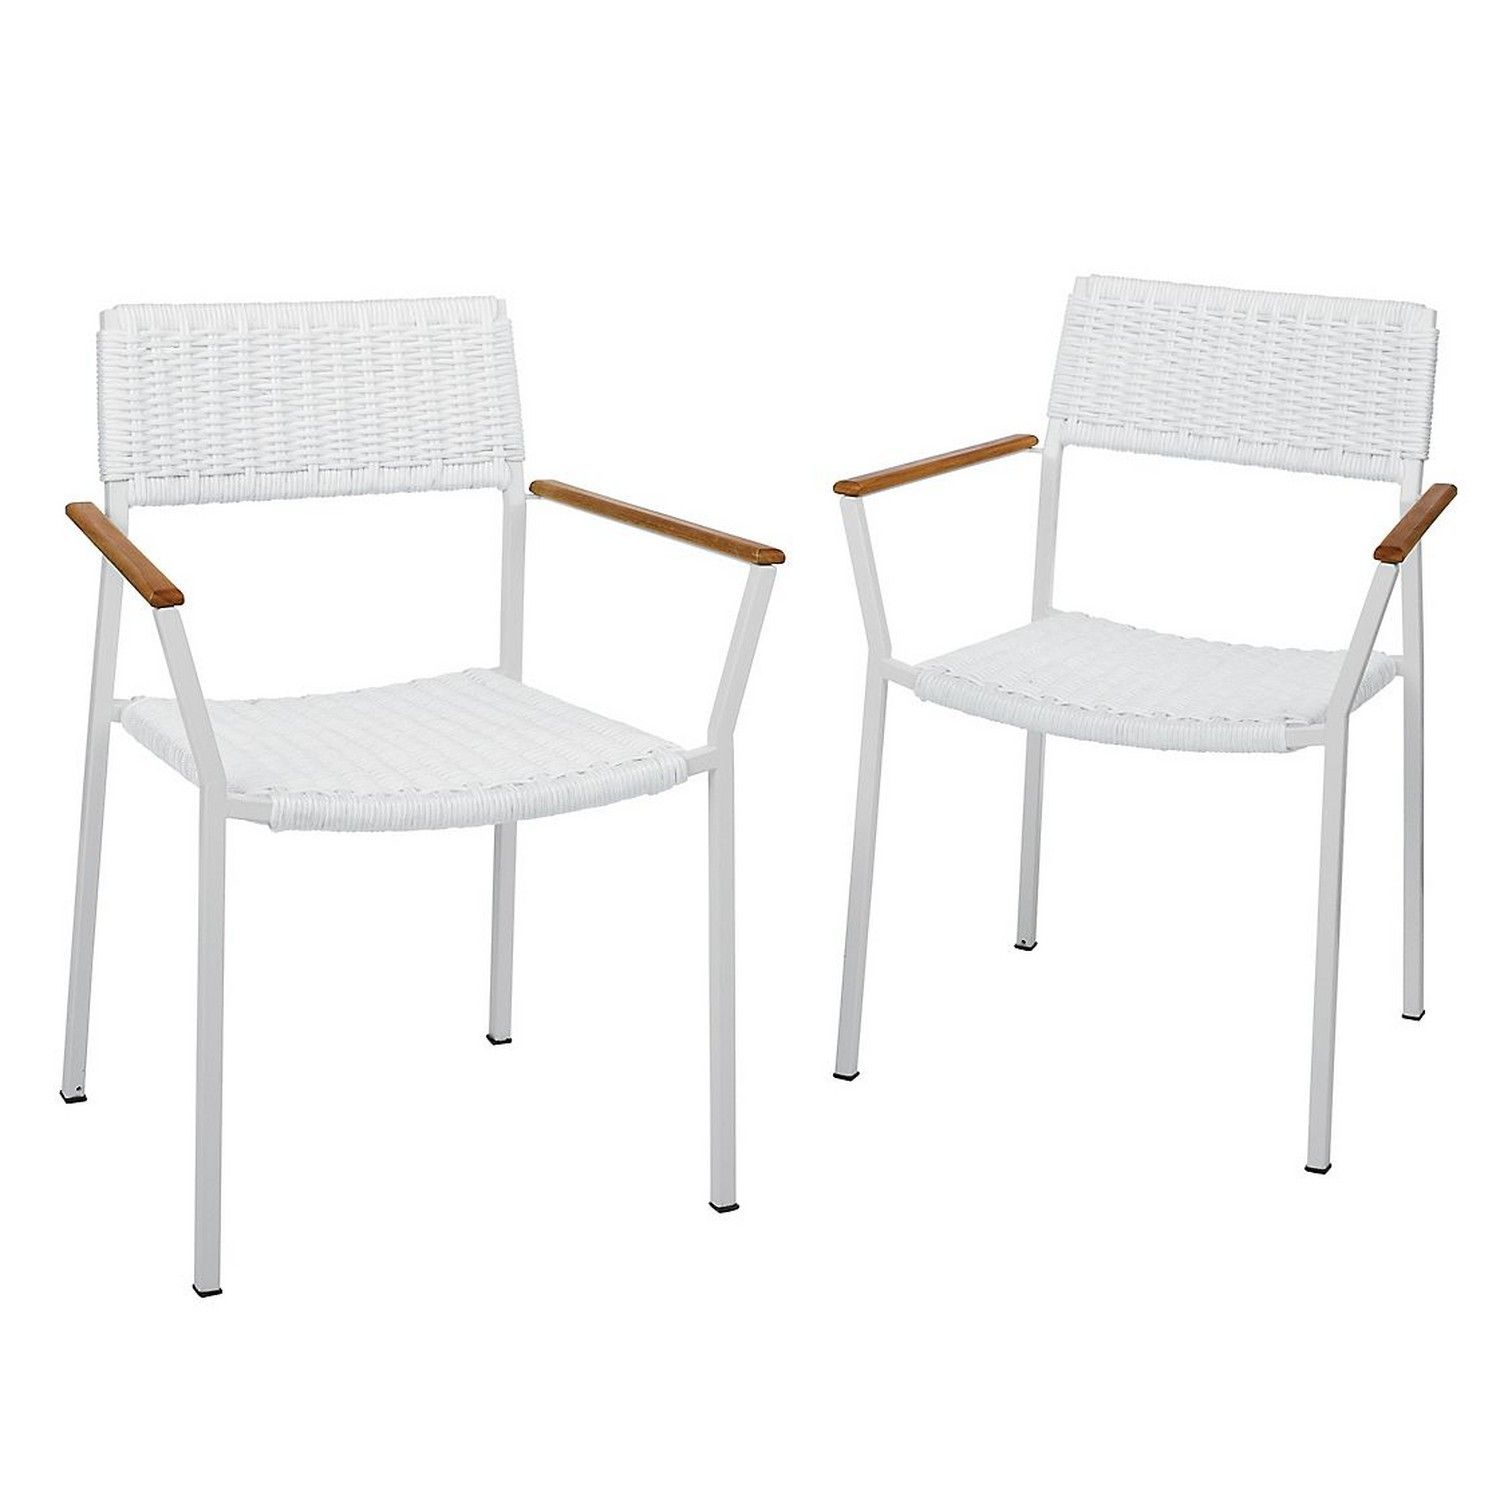 Stackable Metal Patio Chairs Ergonomic For Back Support Pair Of Outdoor Crafted With Powder Coated Frames Durable Solid Teak Armrests